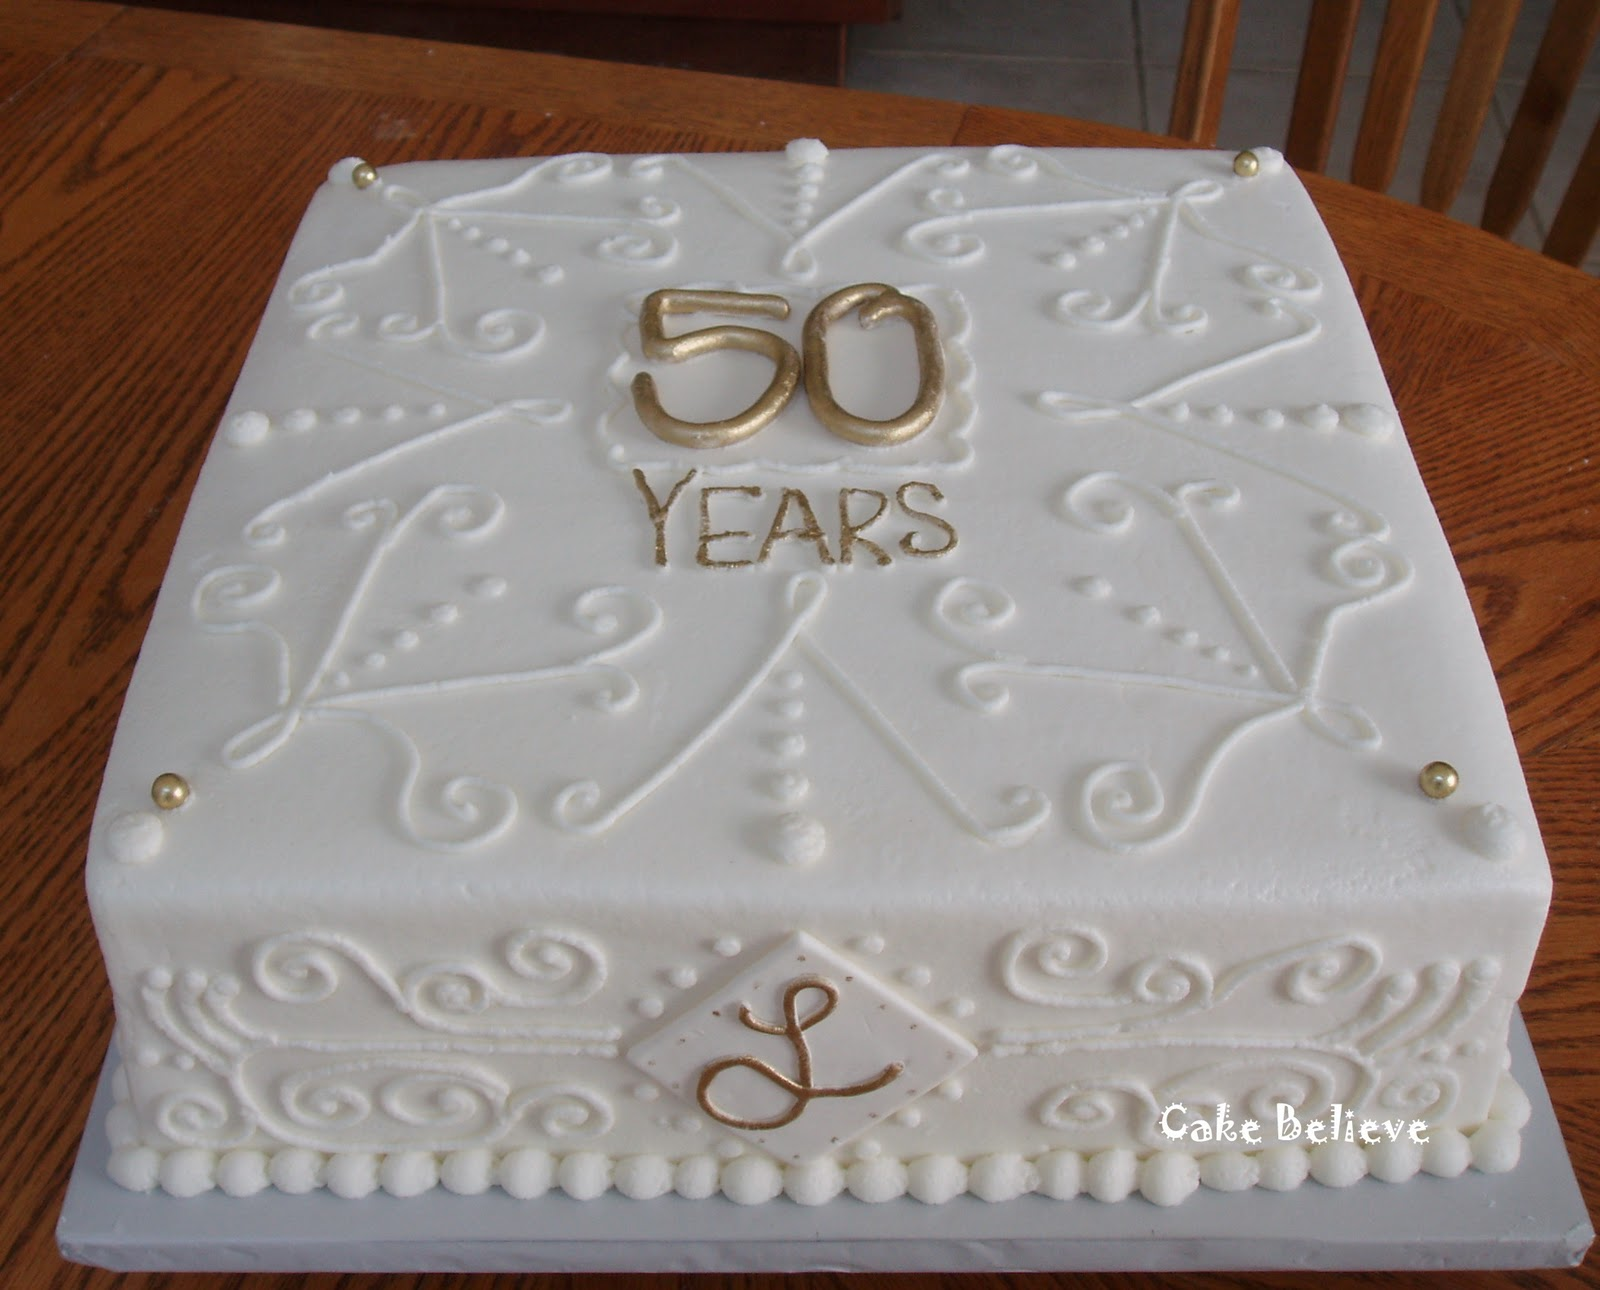 Cake Believe: 50th Wedding Anniversary